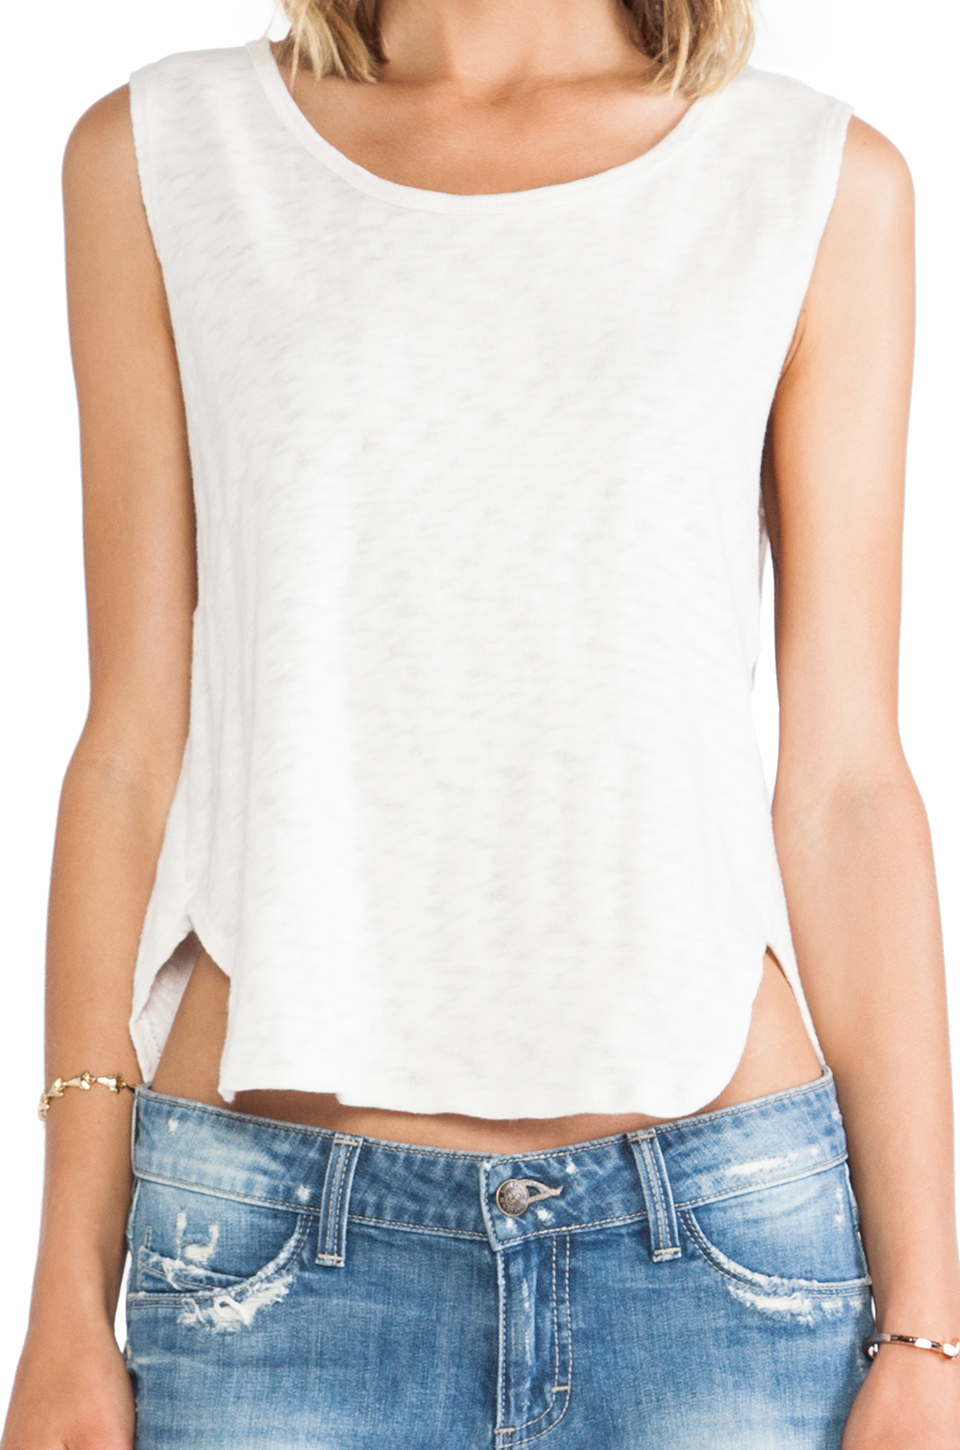 Lyst Lna Anja Tank In White Top Gallery